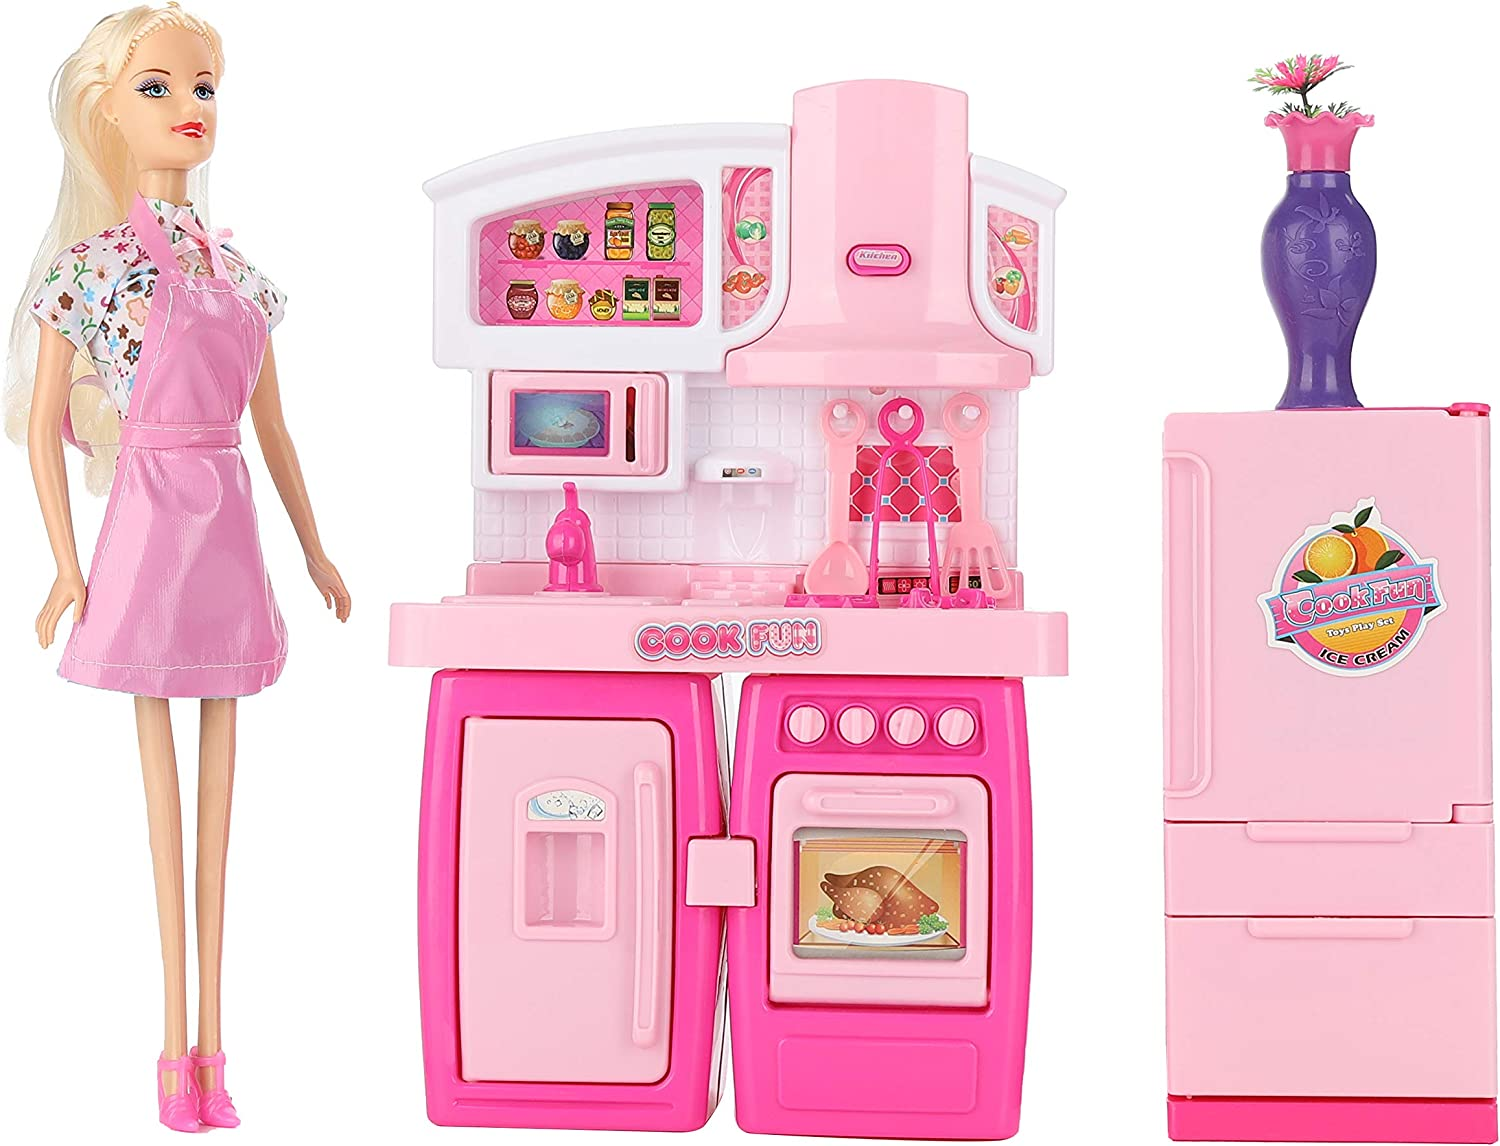 QHLPQH Kitchen Set for Kids Pink Dollhouse Kitchen Girls Mini Kitchen Playset with Sound and Light Oven Microwave Refrigerator Toy Doll House Asseccories and Furniture Chef Role Play